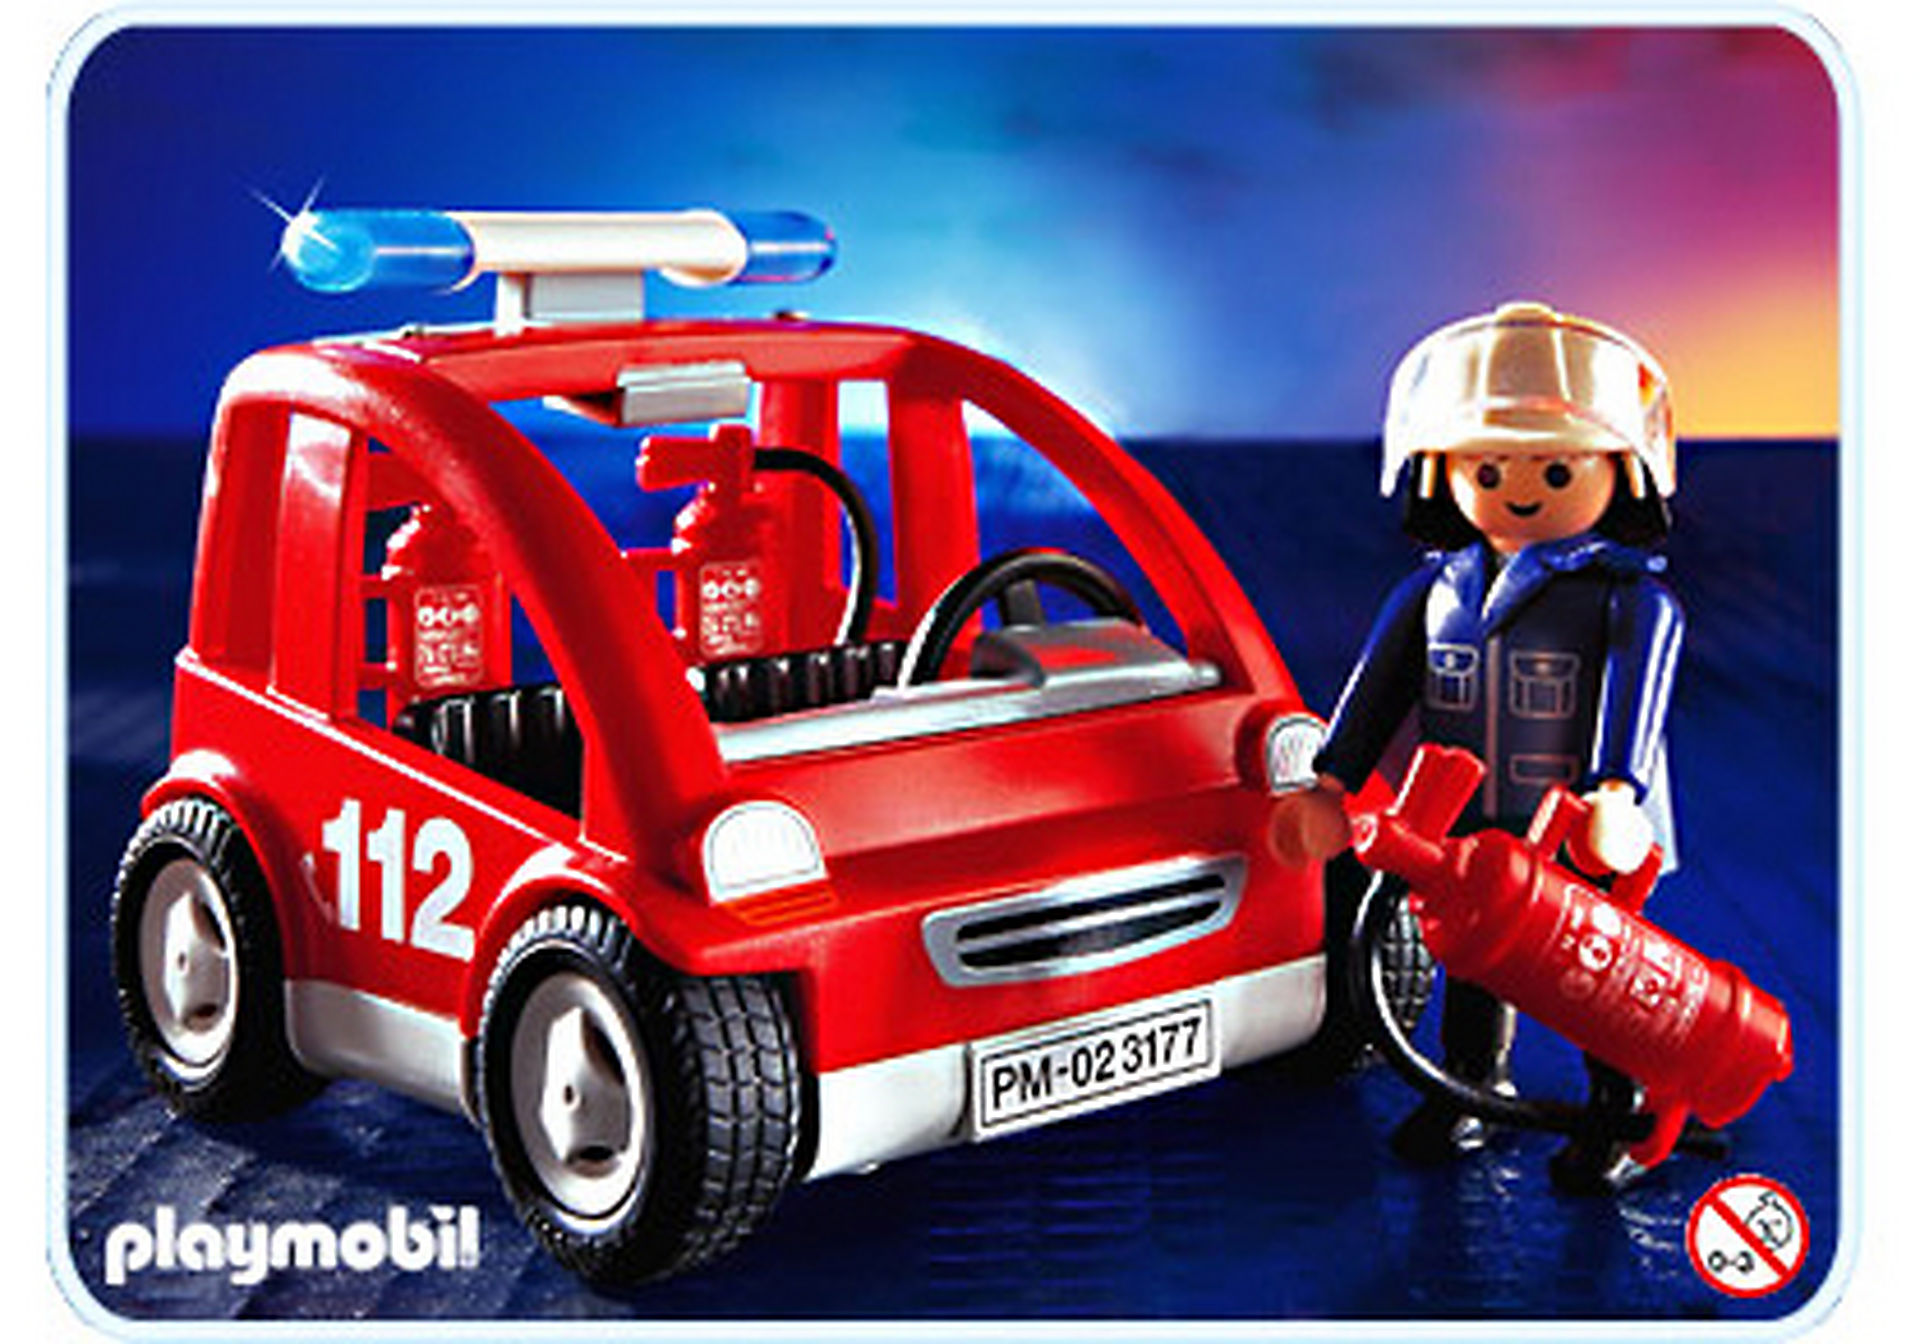 http://media.playmobil.com/i/playmobil/3177-A_product_detail/Capitaine pompier/véhicule